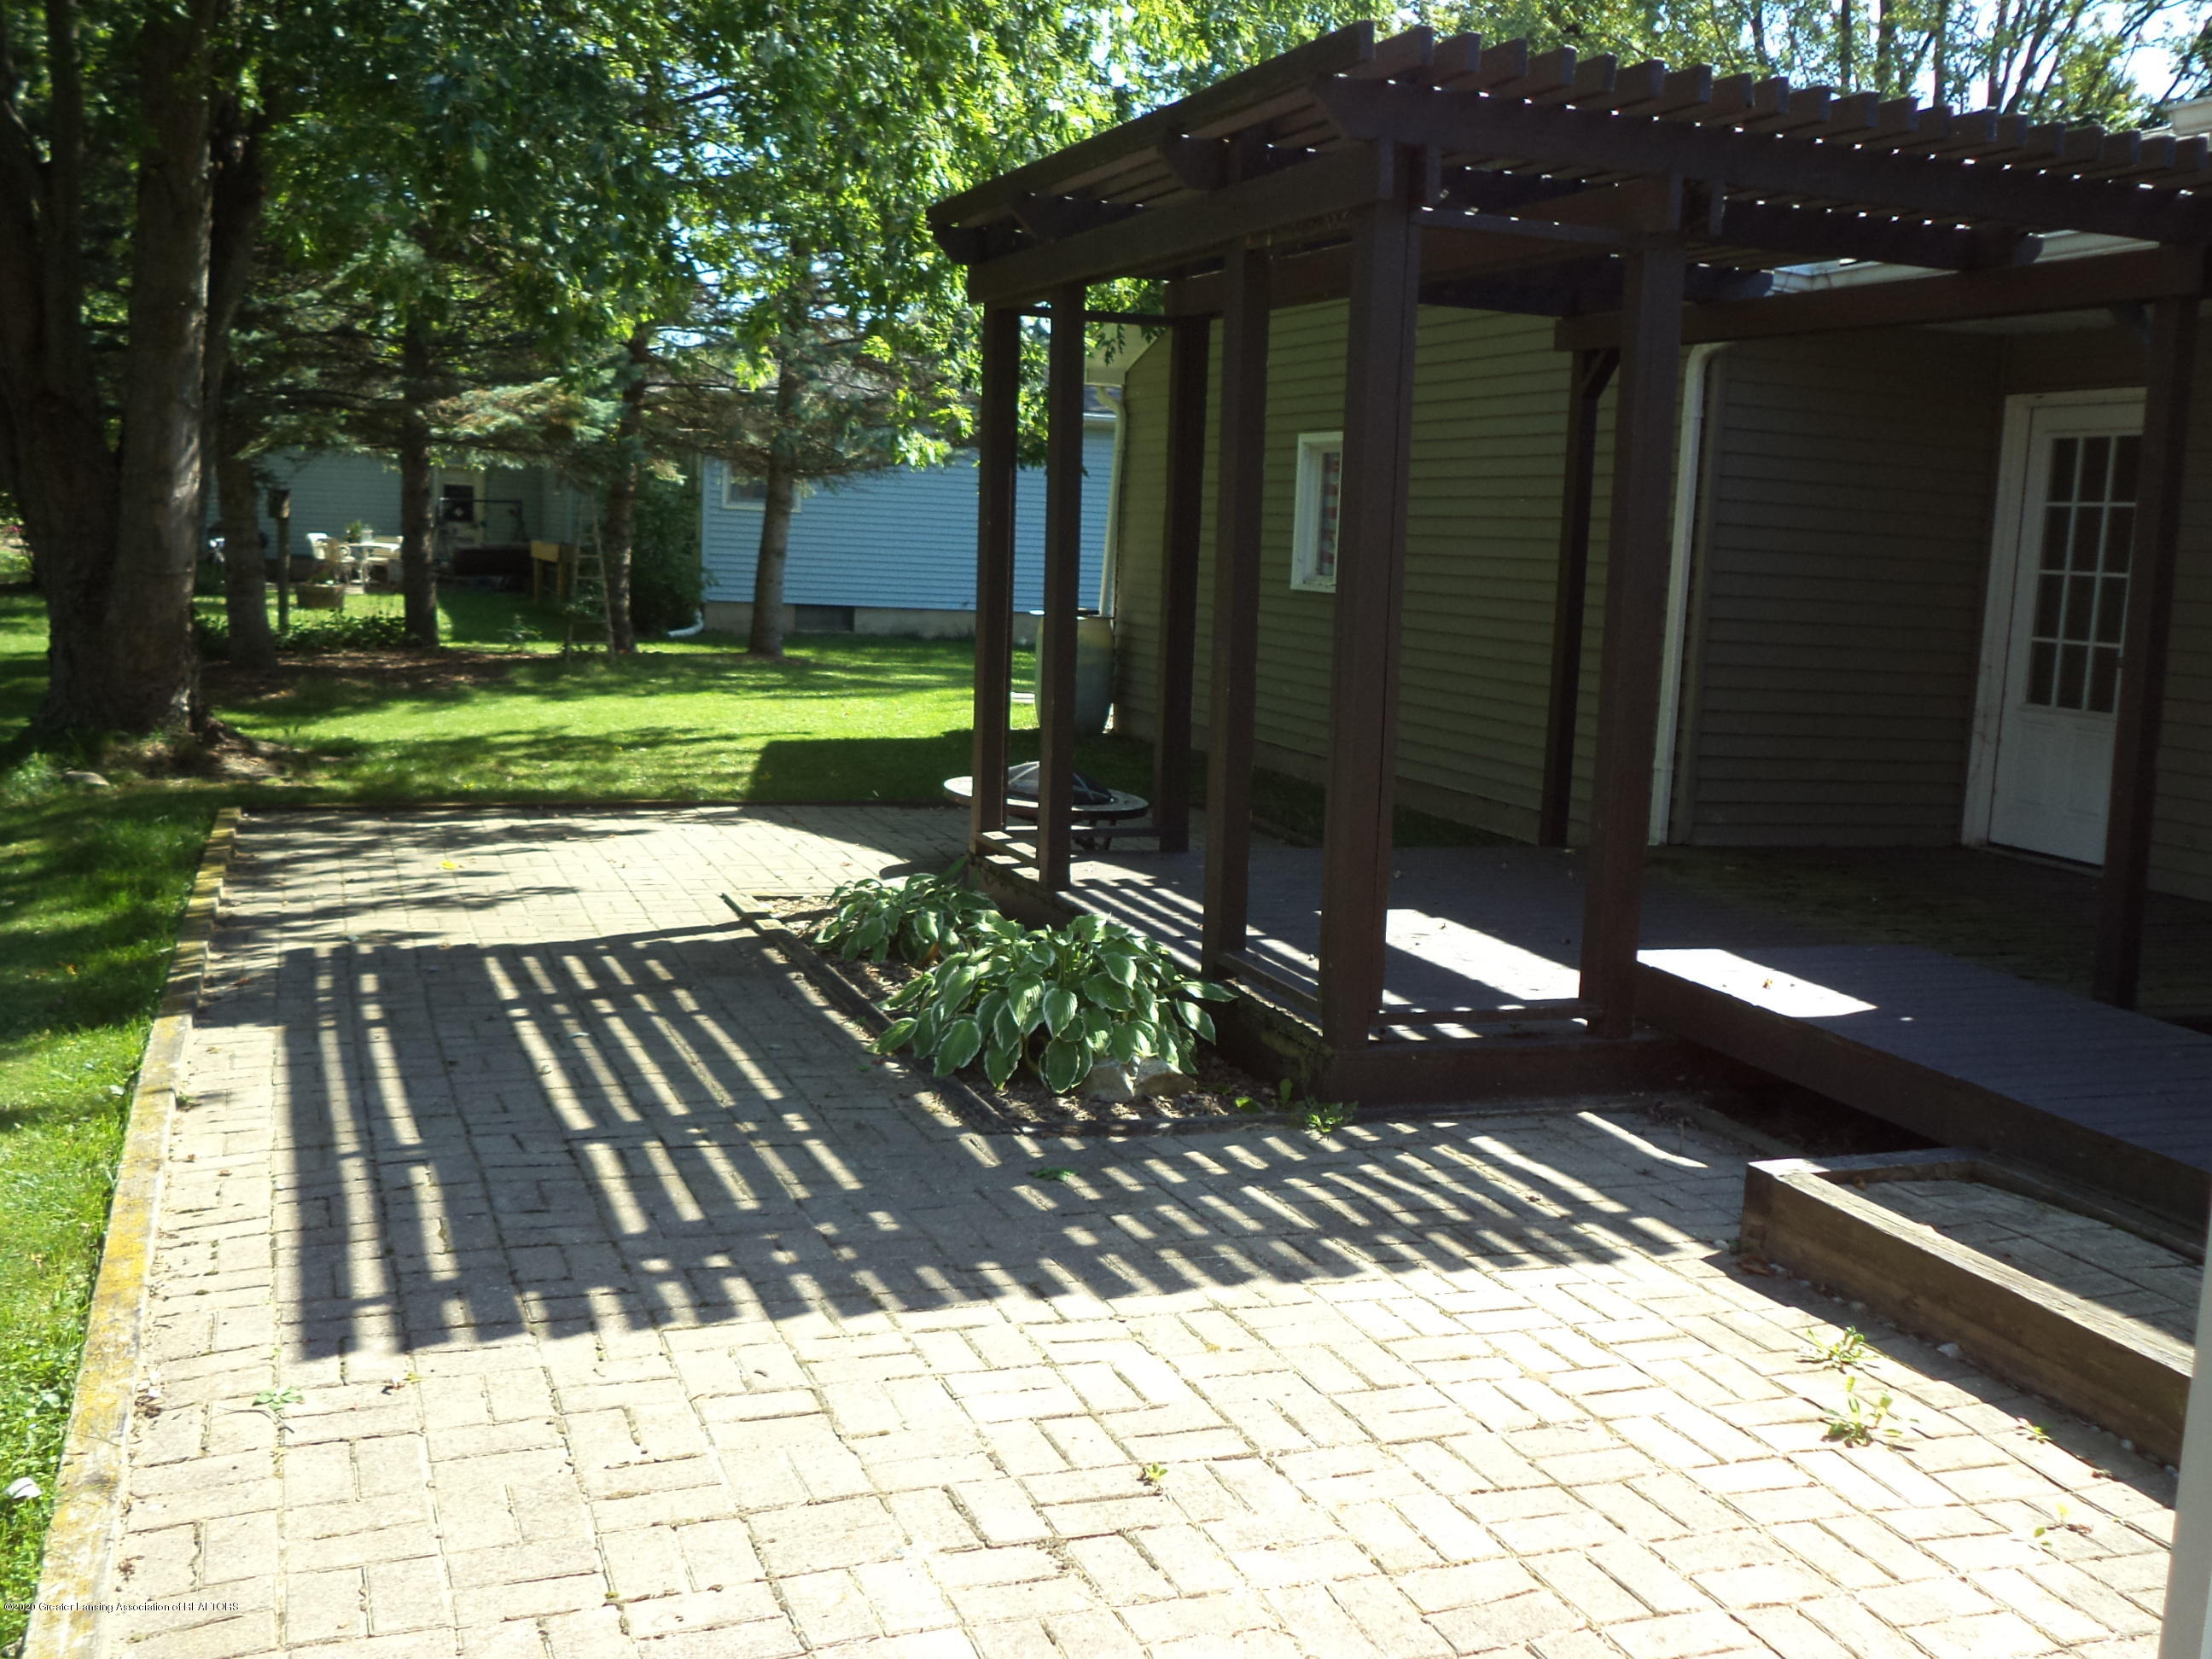 401 Meadowview Dr - View of paver blocks & deck pergola area - 53